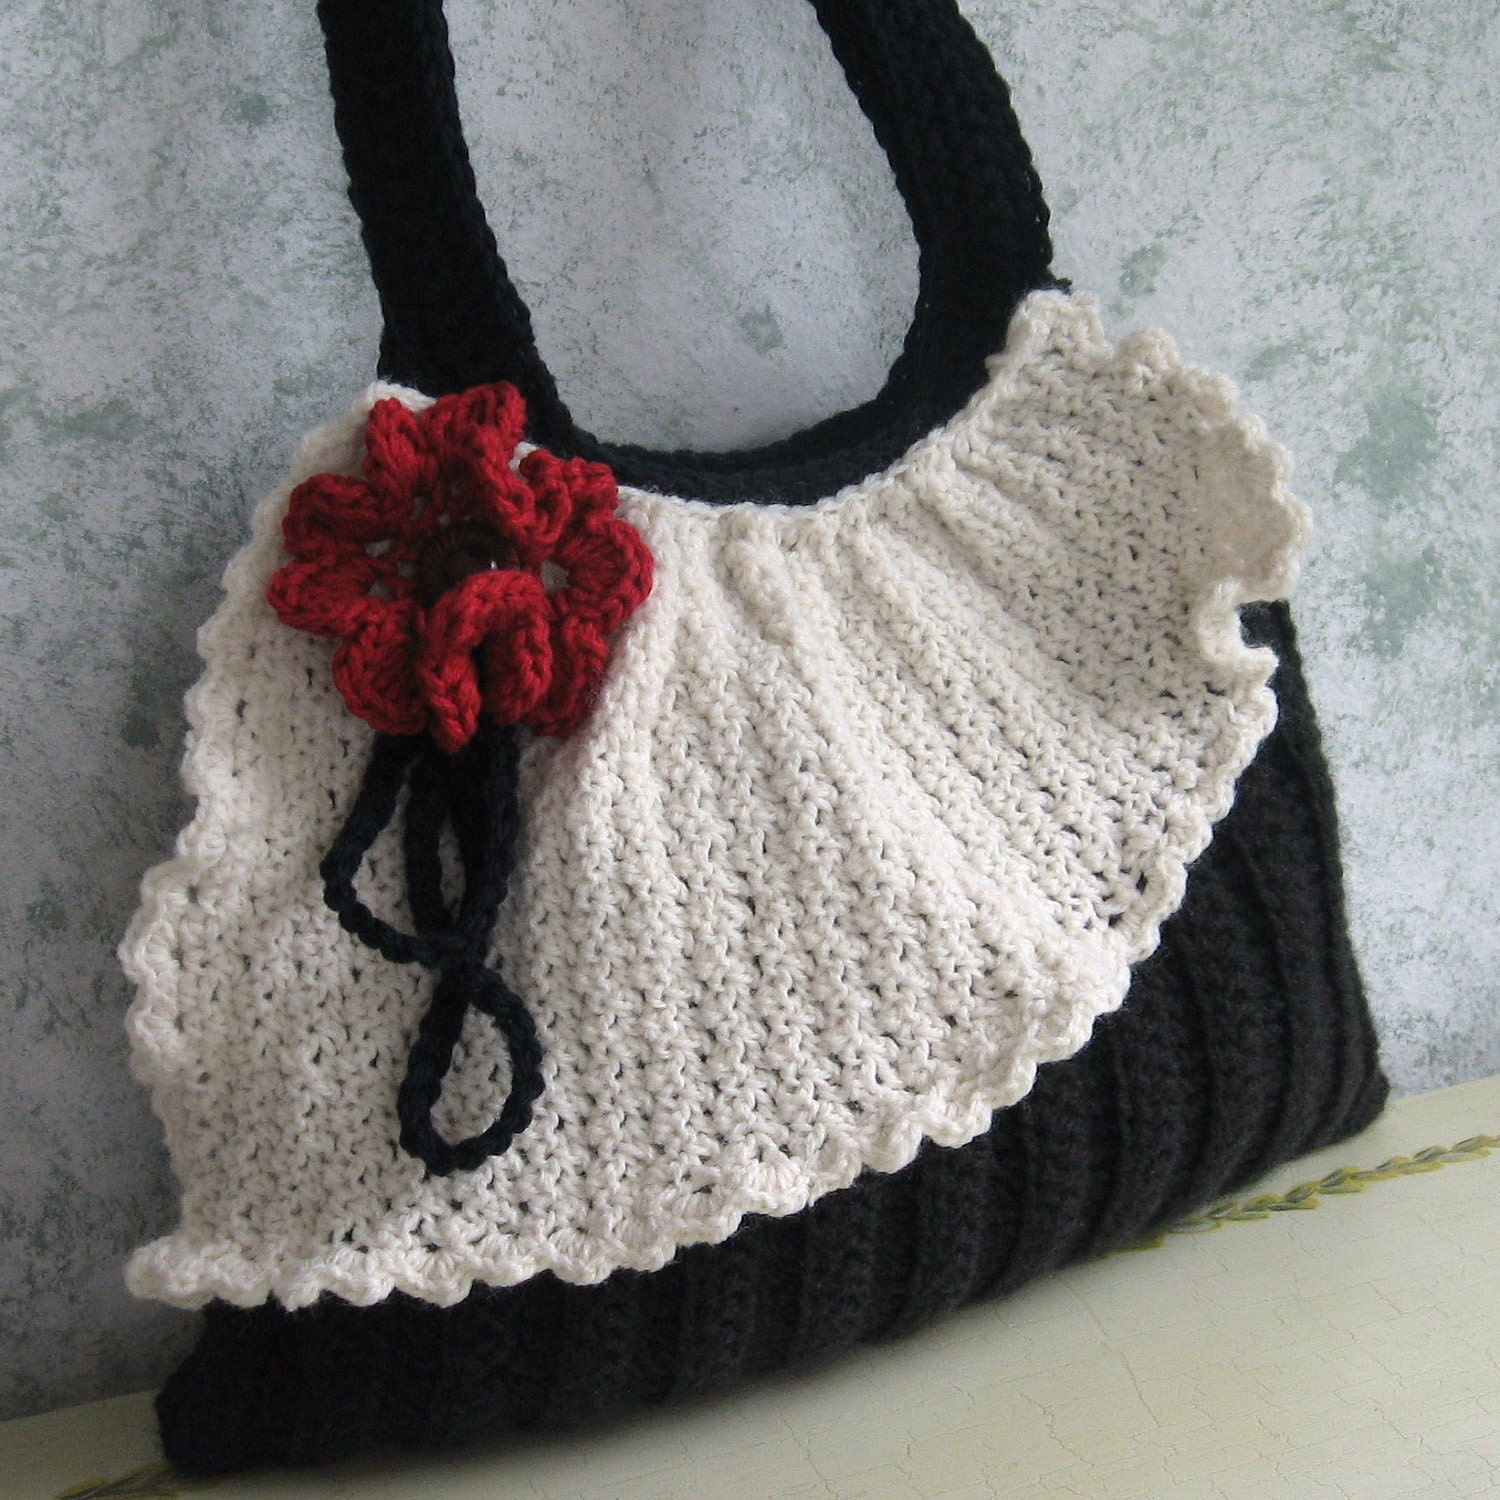 Crochet Purses And Bags : Crochet Purse Pattern Pleated Bag With Drape And by kalliedesigns